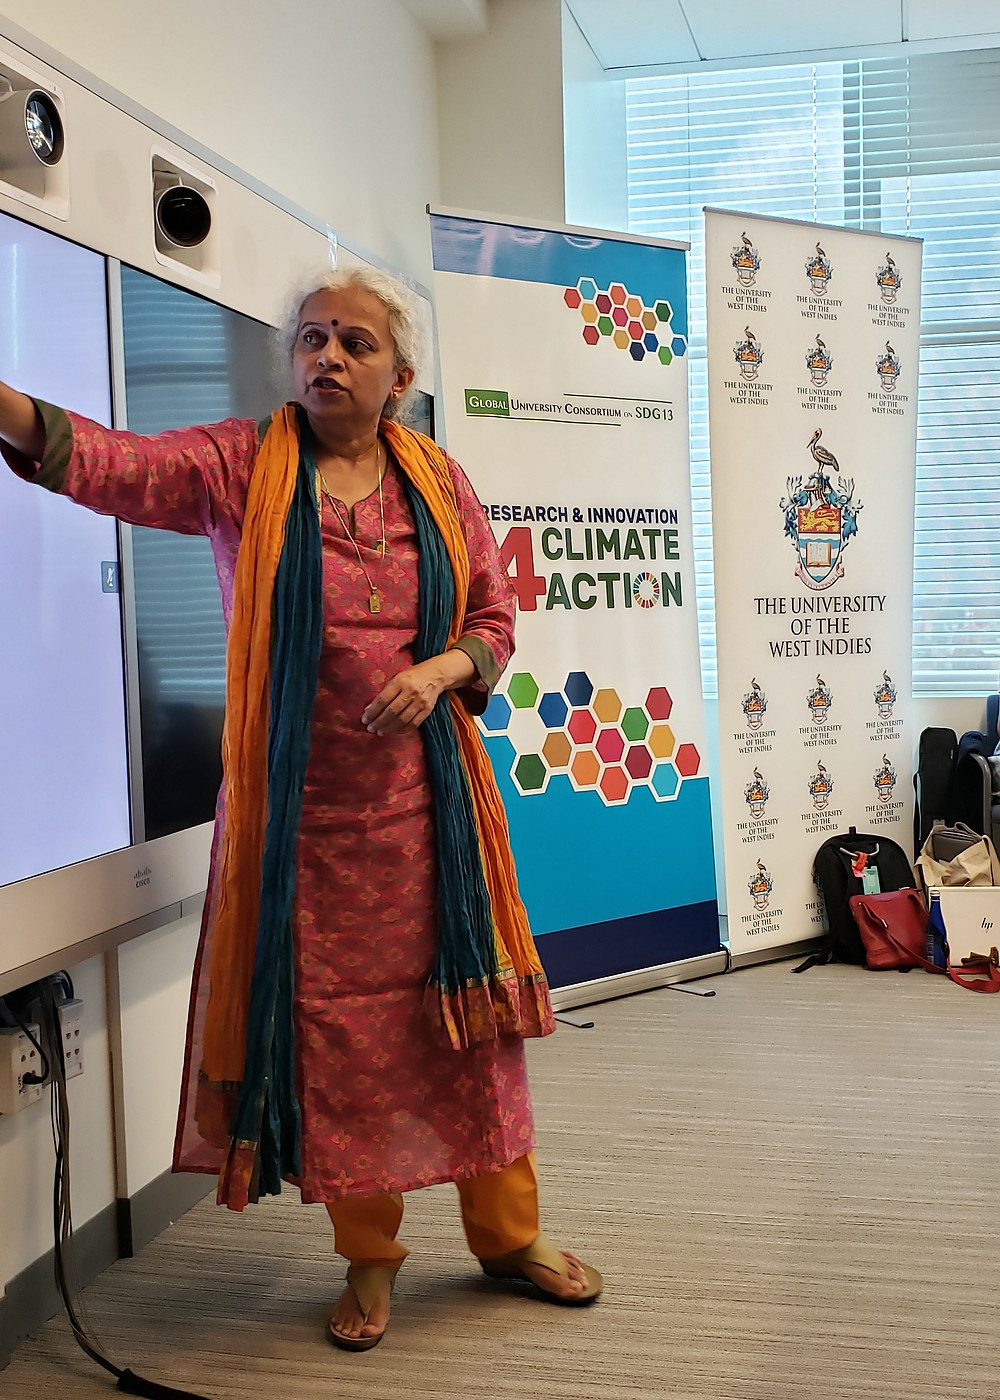 Dr. Leena Srivastava of the TERI School of Advanced Studies demonstrating the synergies between the social sciences and the climate agenda.